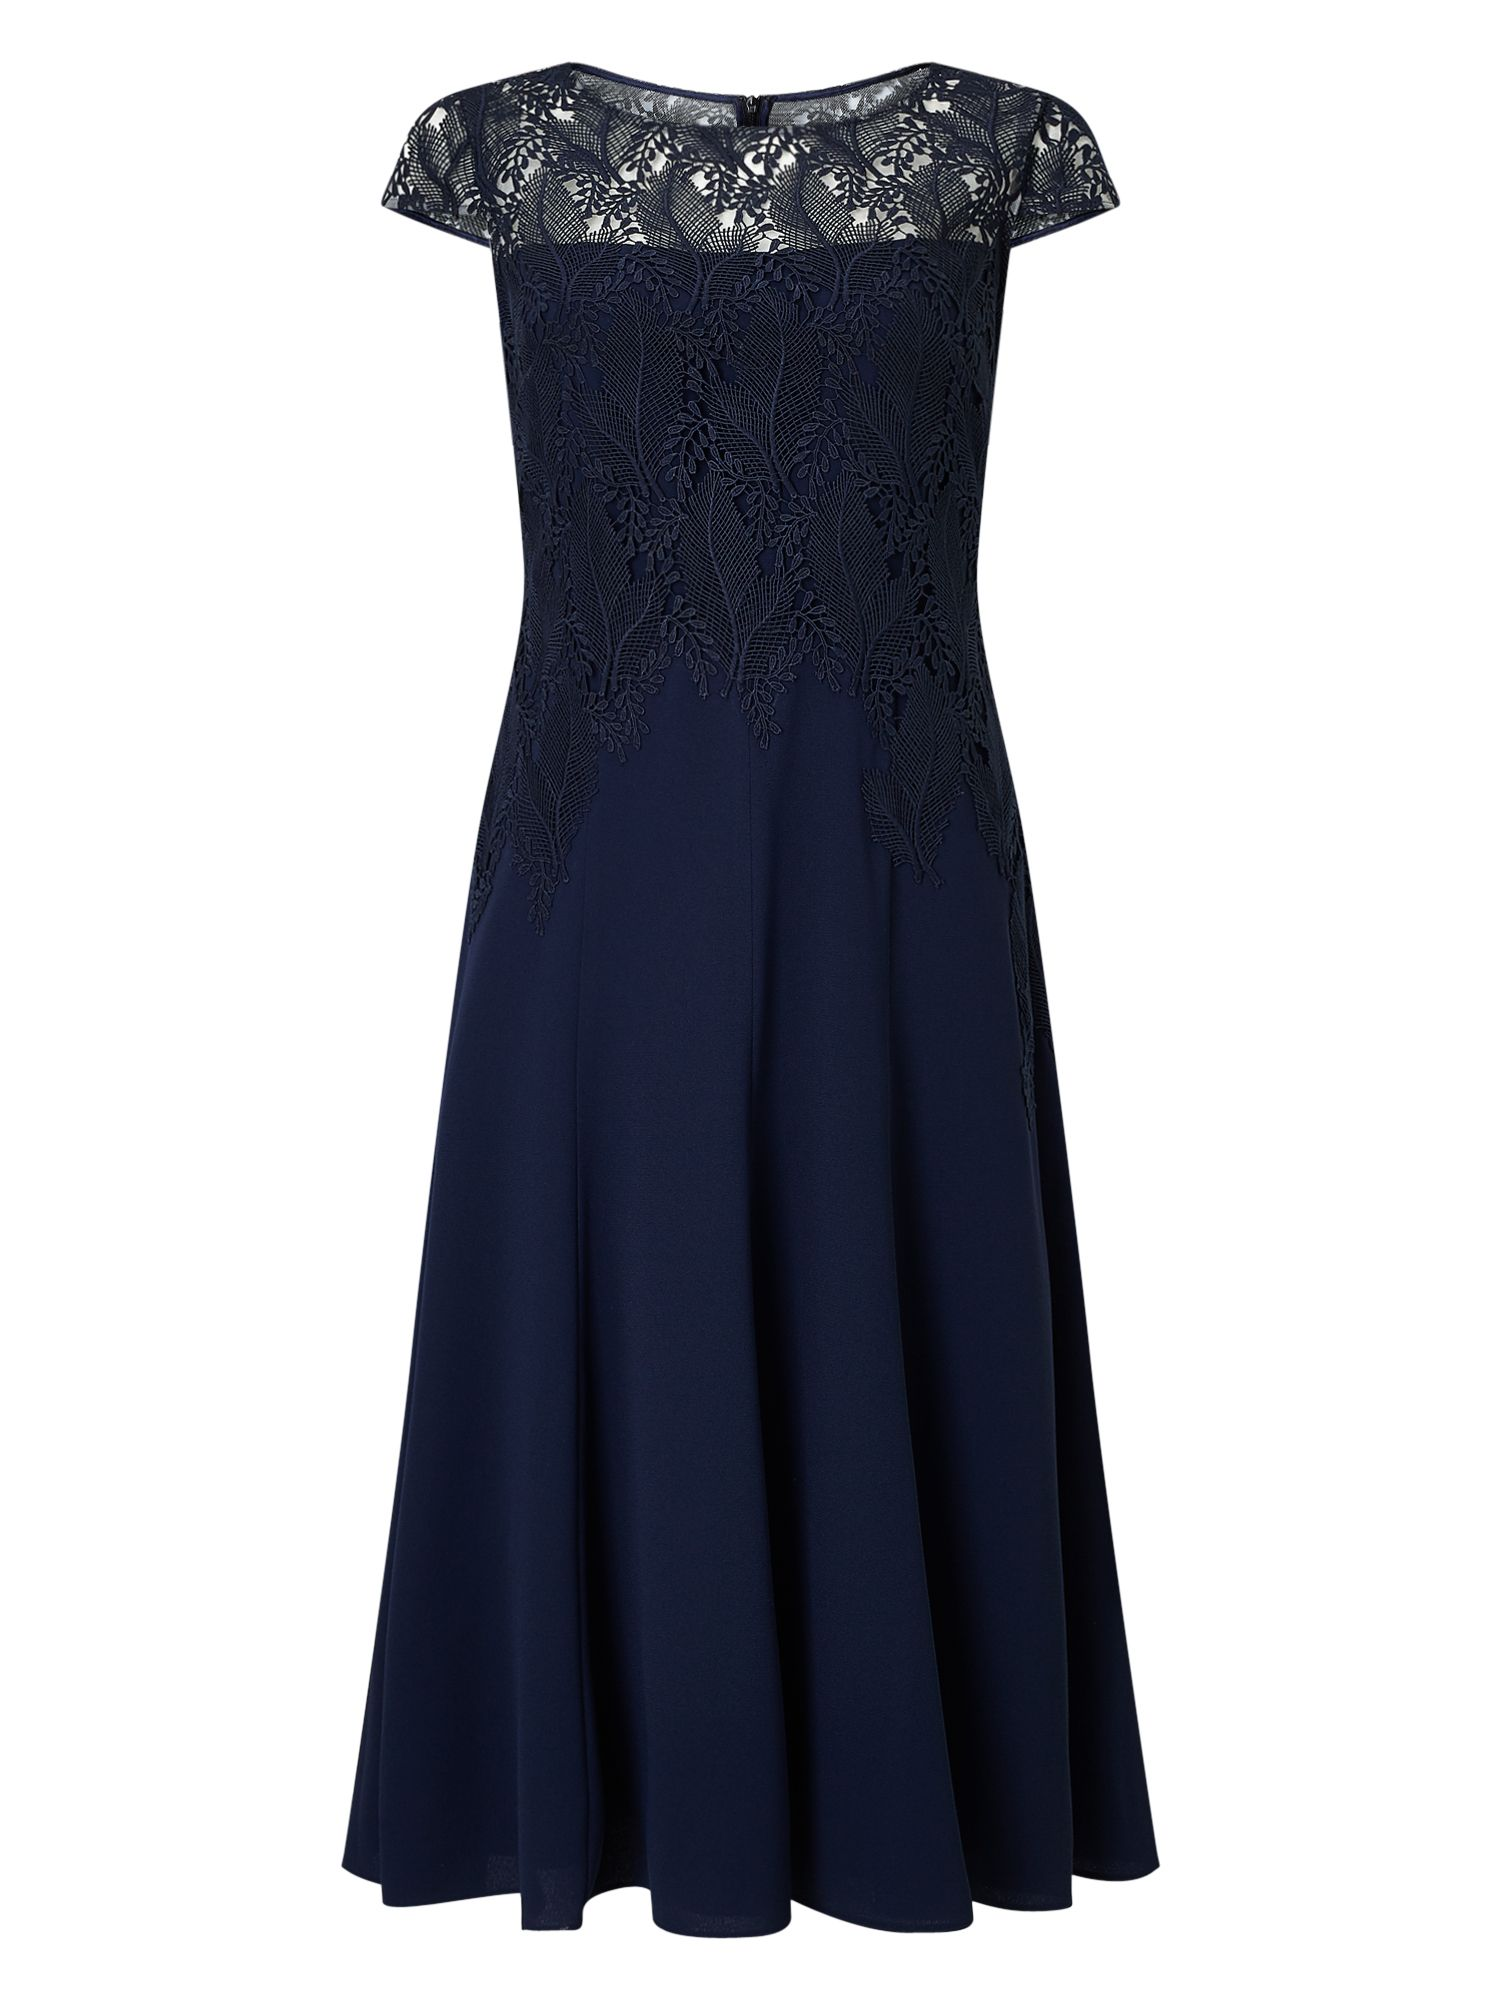 Jacques Vert Leaf Lace Top Crepe Soft Dress, Blue